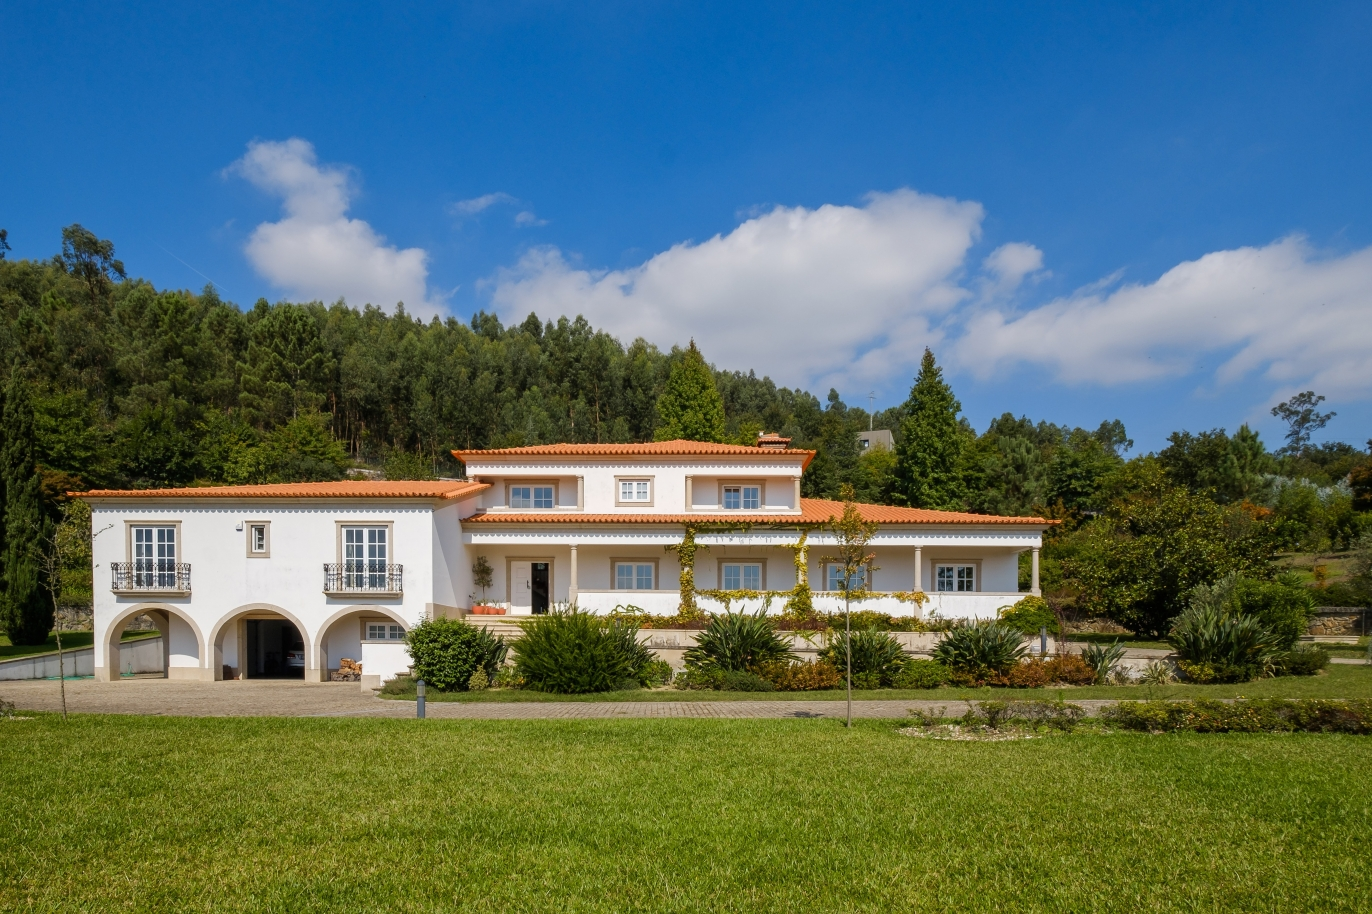 tipical-portuguese-house-with-garden-and-swimming-pool-for-sale-guimaraes-portugal